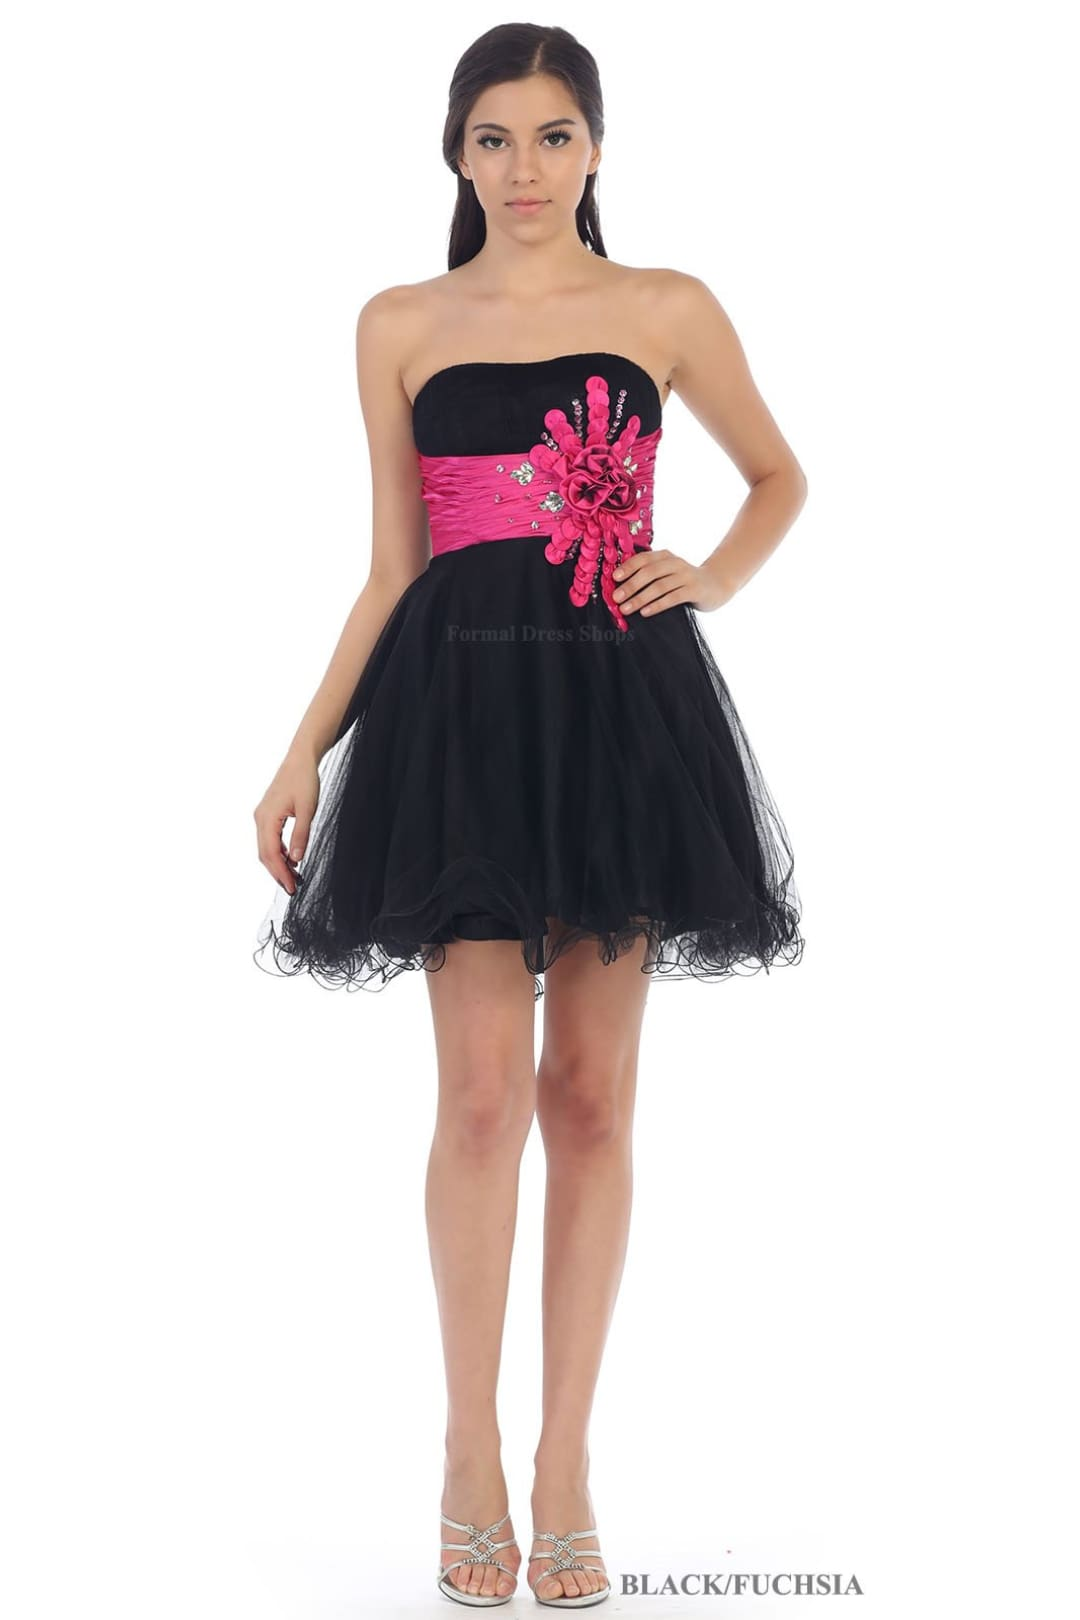 Strapless Homecoming Dress - Black/Fuchsia / 4